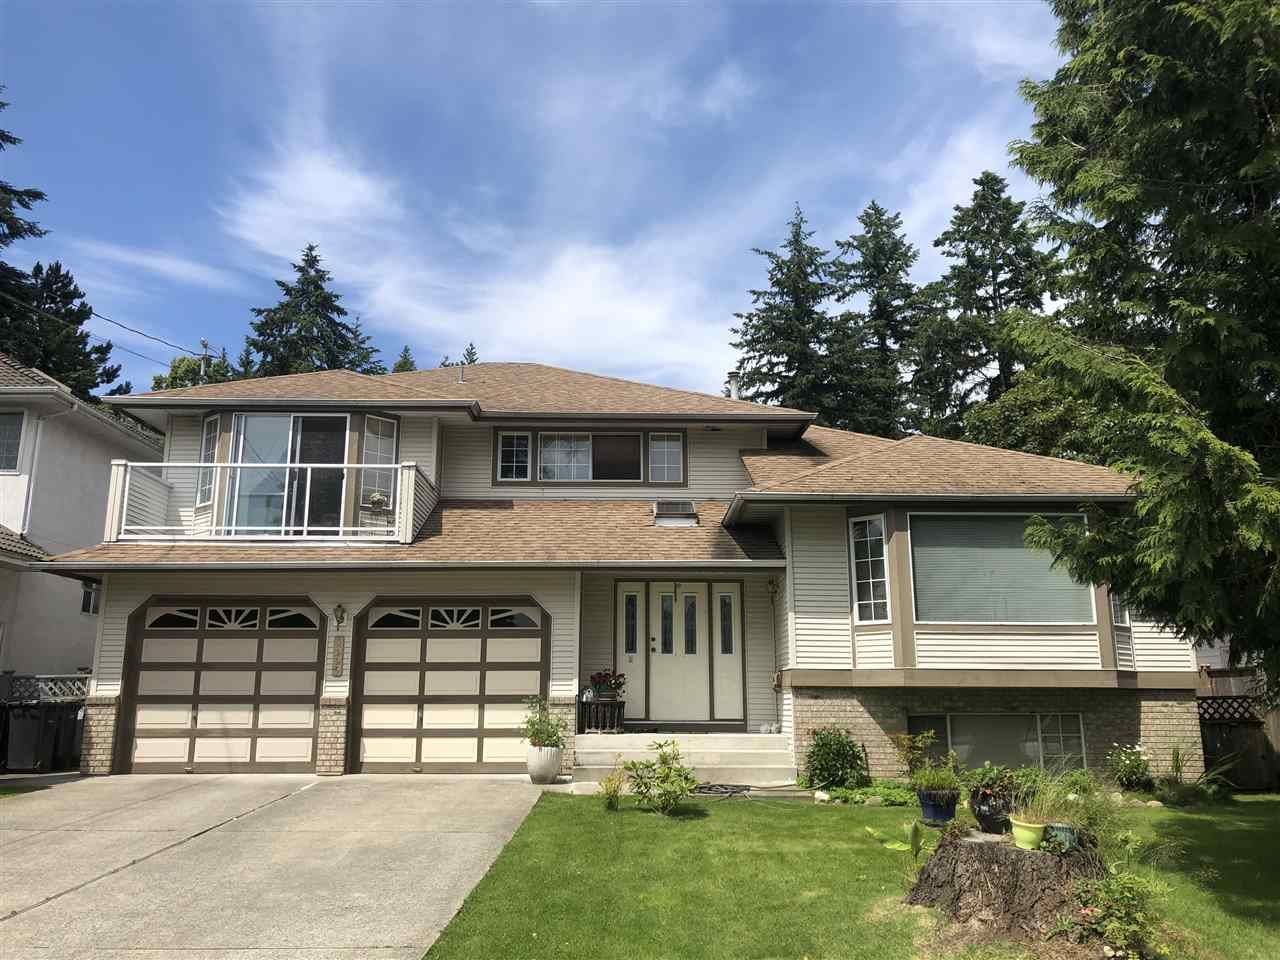 Main Photo: 1233 WINSLOW AVENUE in : Central Coquitlam House for sale : MLS®# R2473662